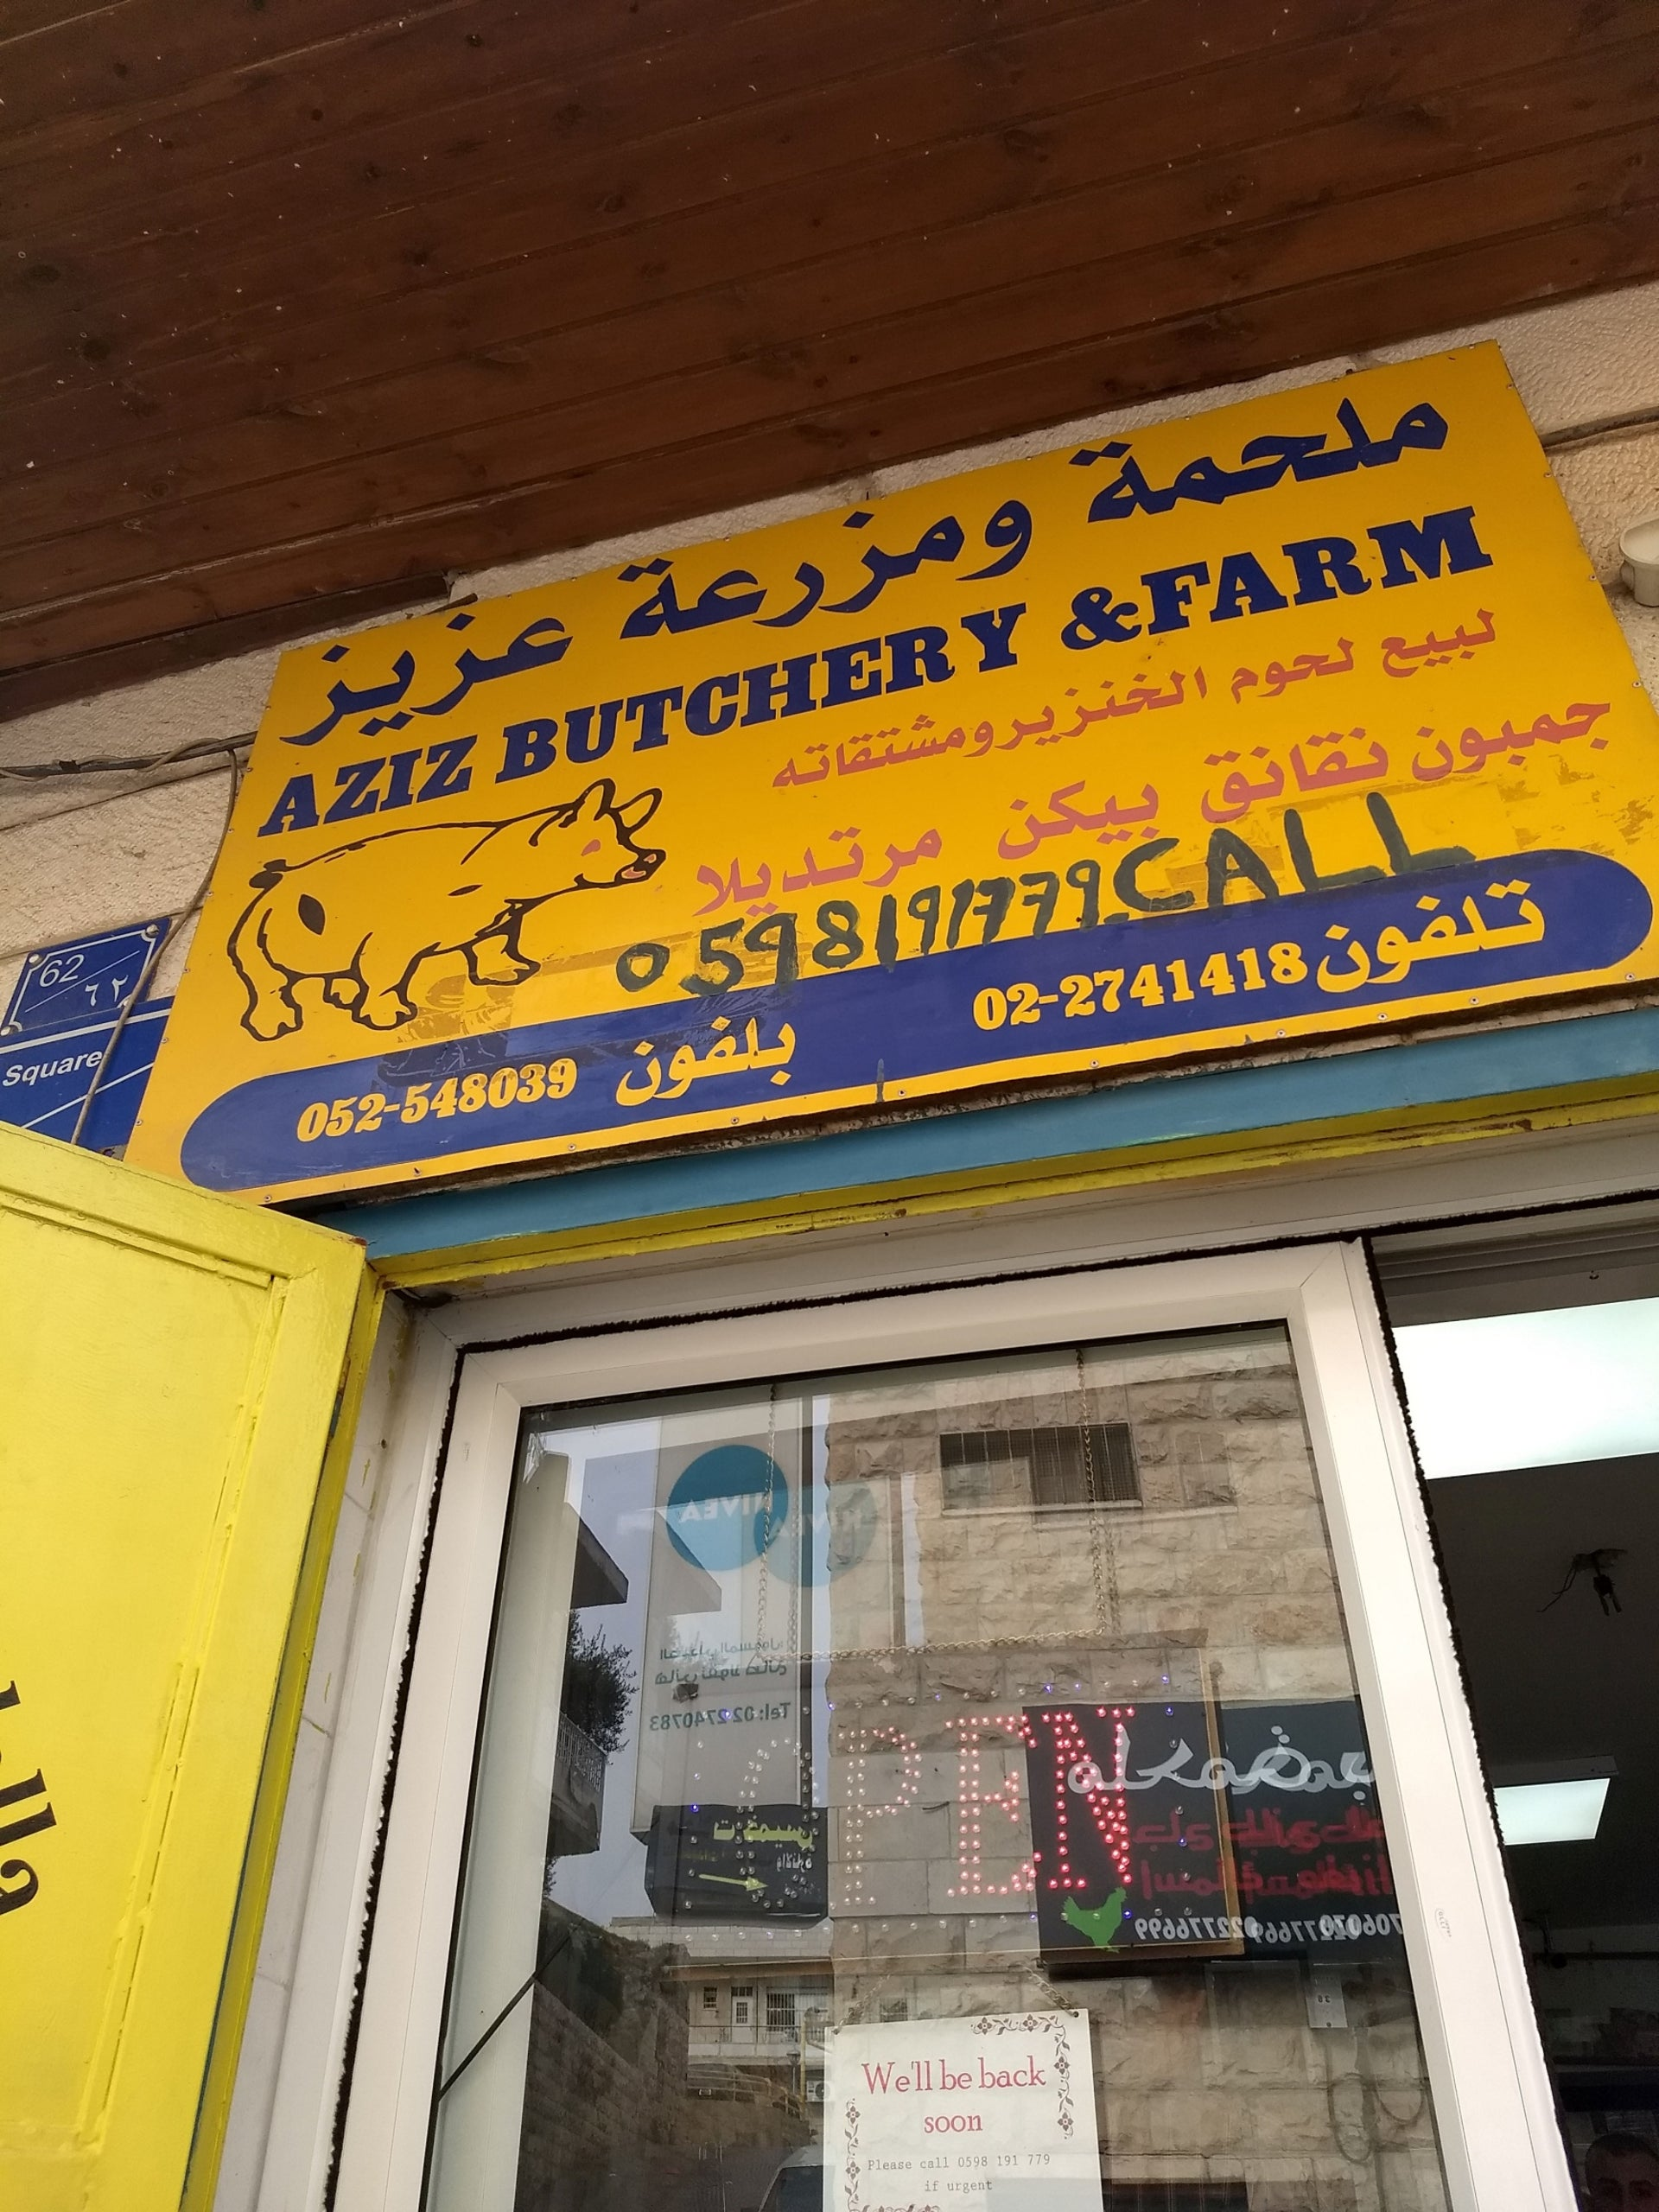 The exterior of the Aziz Butchery and Farm shop in Beit Jala, the West Bank, December 2017.